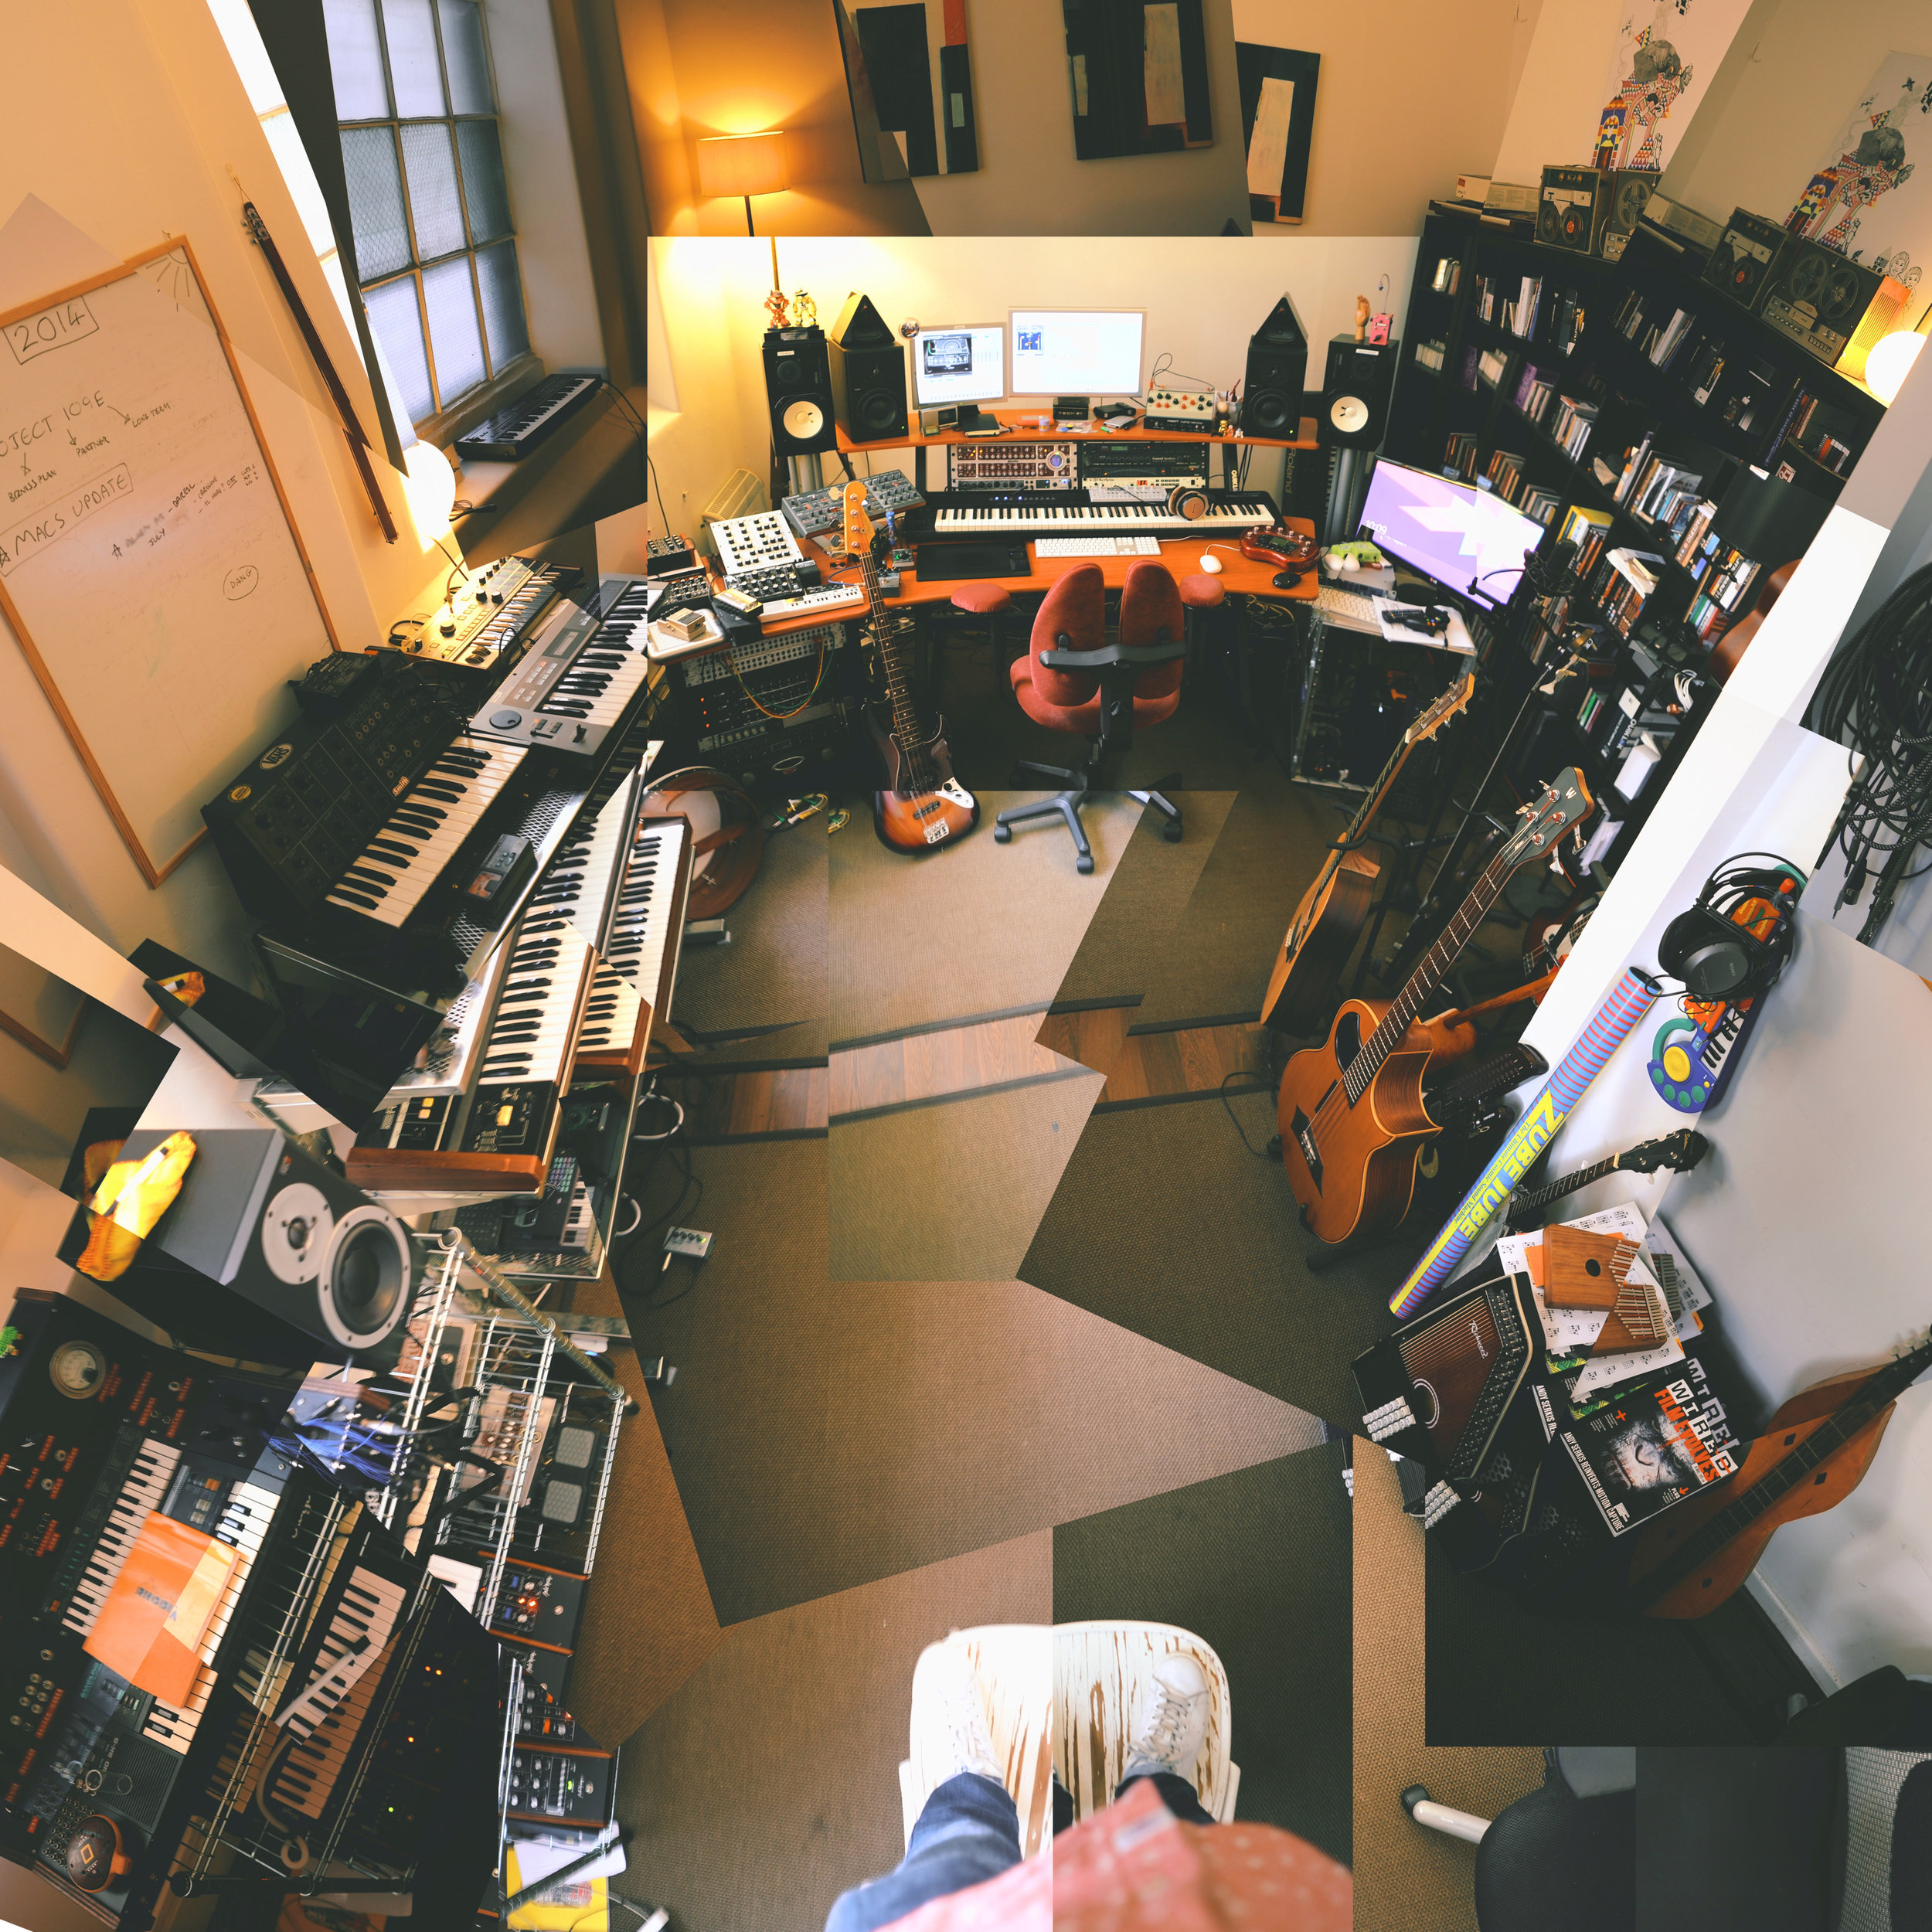 The Studio - Located in an old cooperage, the Flight's east London studio is home to an array of home made instruments and vintage analogue synthesisers.